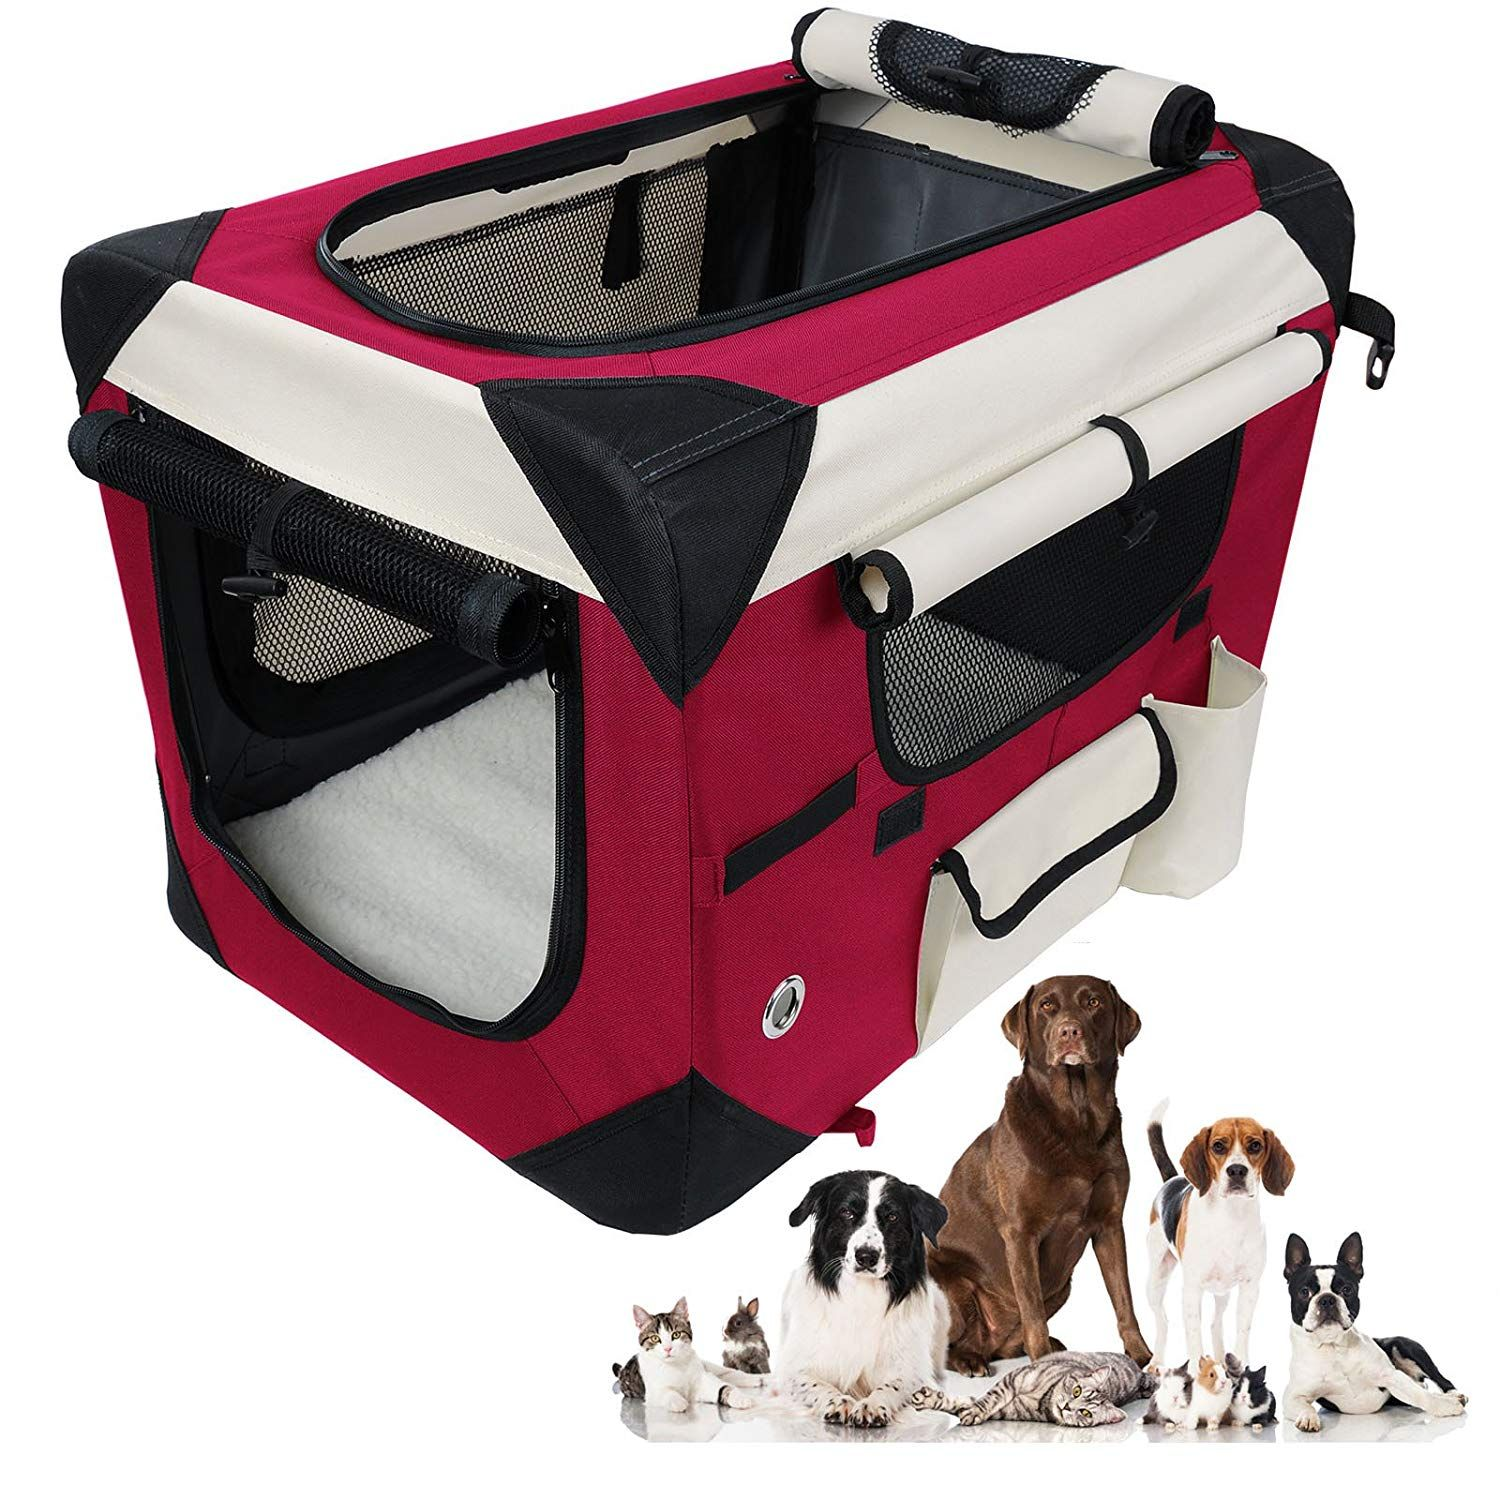 Woltu Folding Pet Carrier Soft Dog Crate Pet Home For Indoor Outdoor Use Multiple Sizes And Colors Available Chec Pet Carriers Soft Dog Crates Dog Carrier